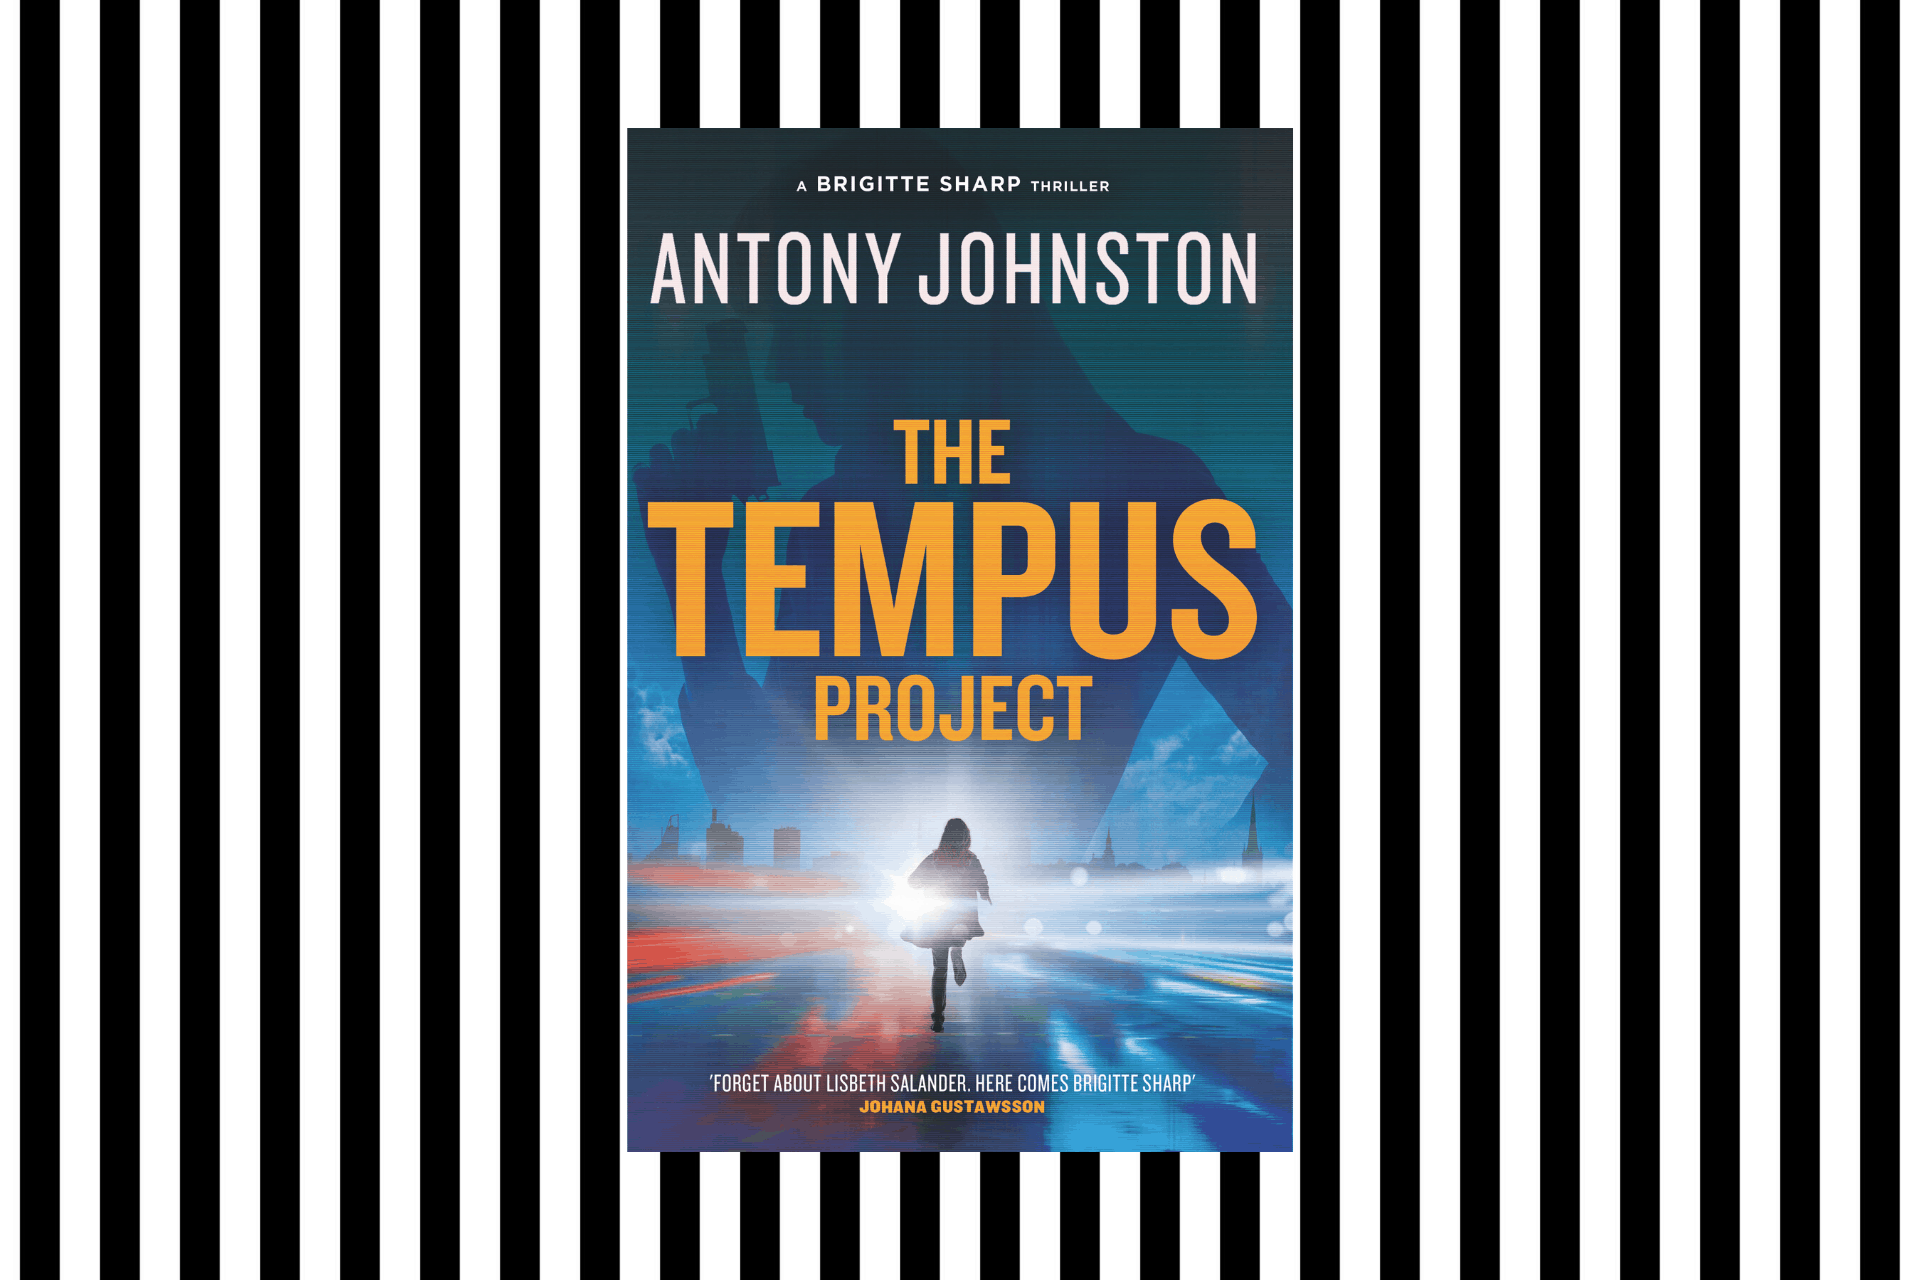 The cover for The Tempus Project by Antony Johnston